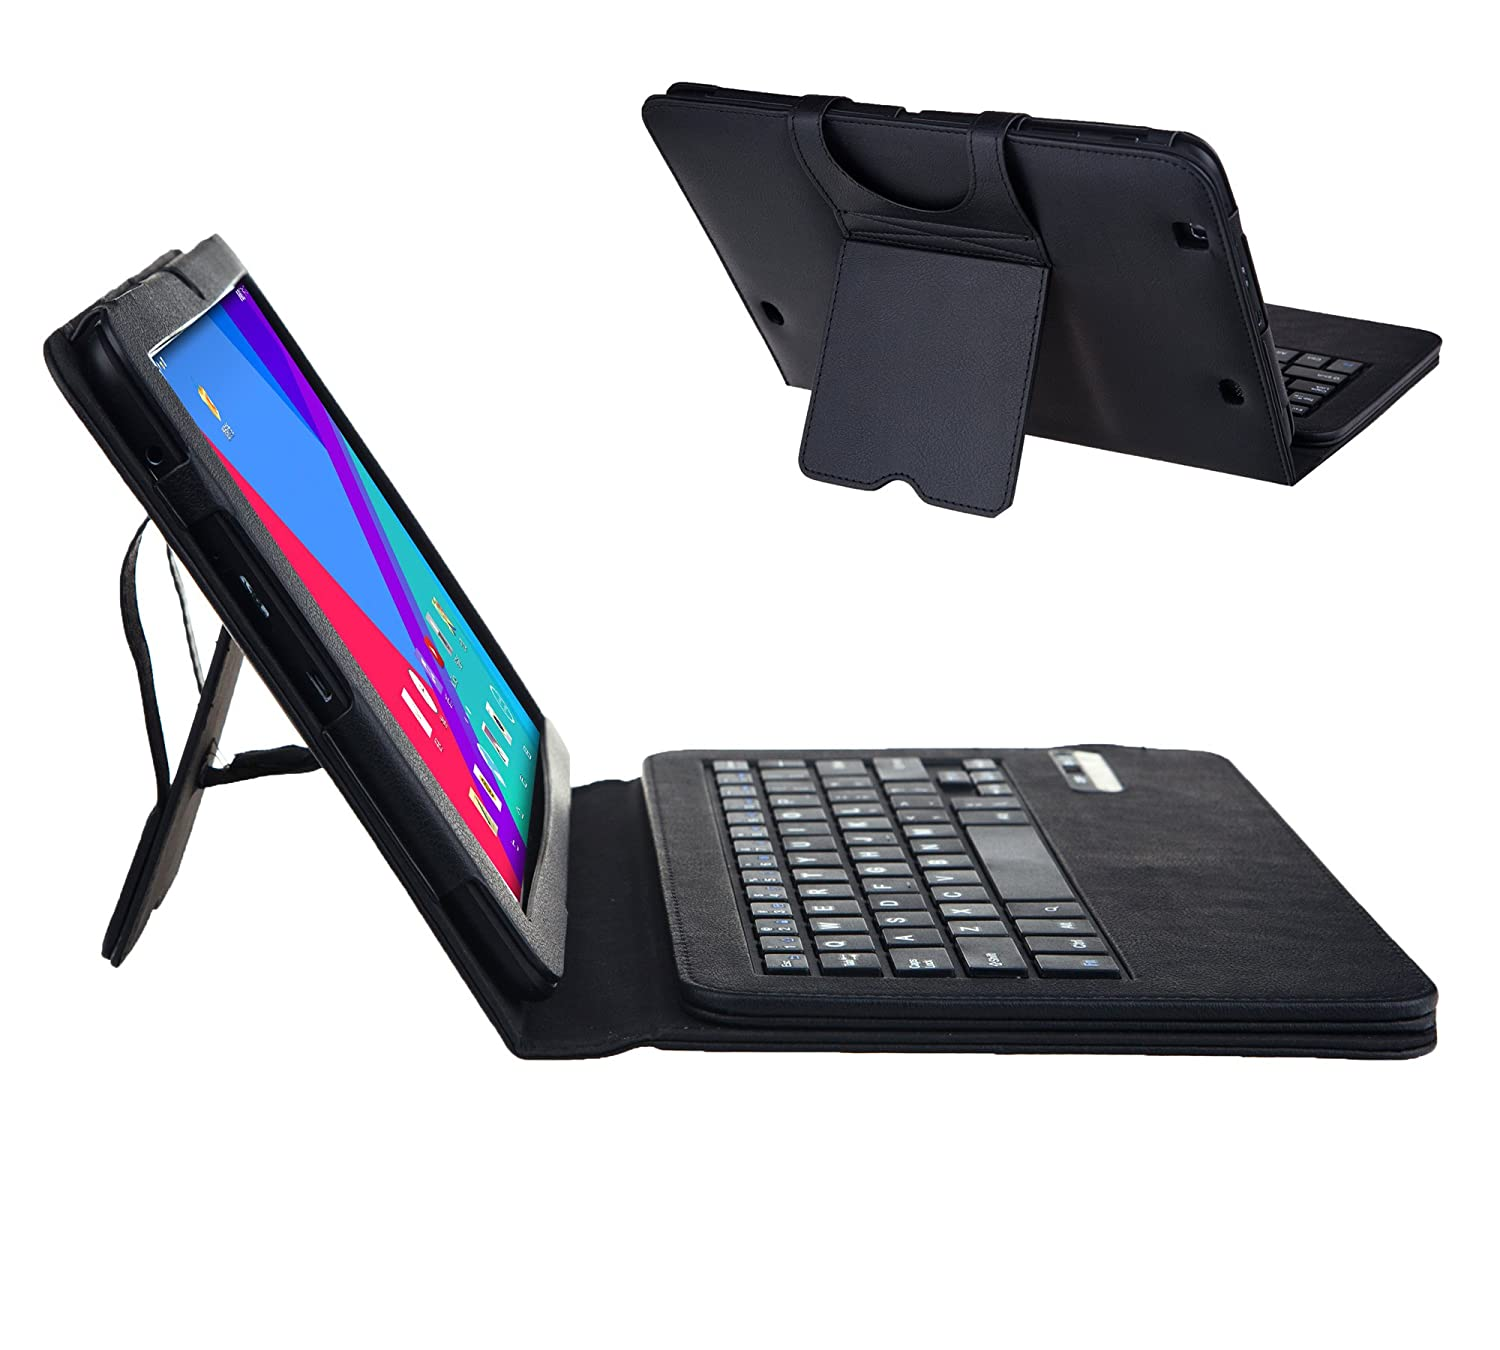 My lg keyboard has stopped working - Amazon Com Ivso Lg G Pad 10 1 Case With Keyboard Ultra Thin High Quality Detachable Bluetooth Keyboard Stand Case Cover For Lg G Pad 10 1 Tablet Black